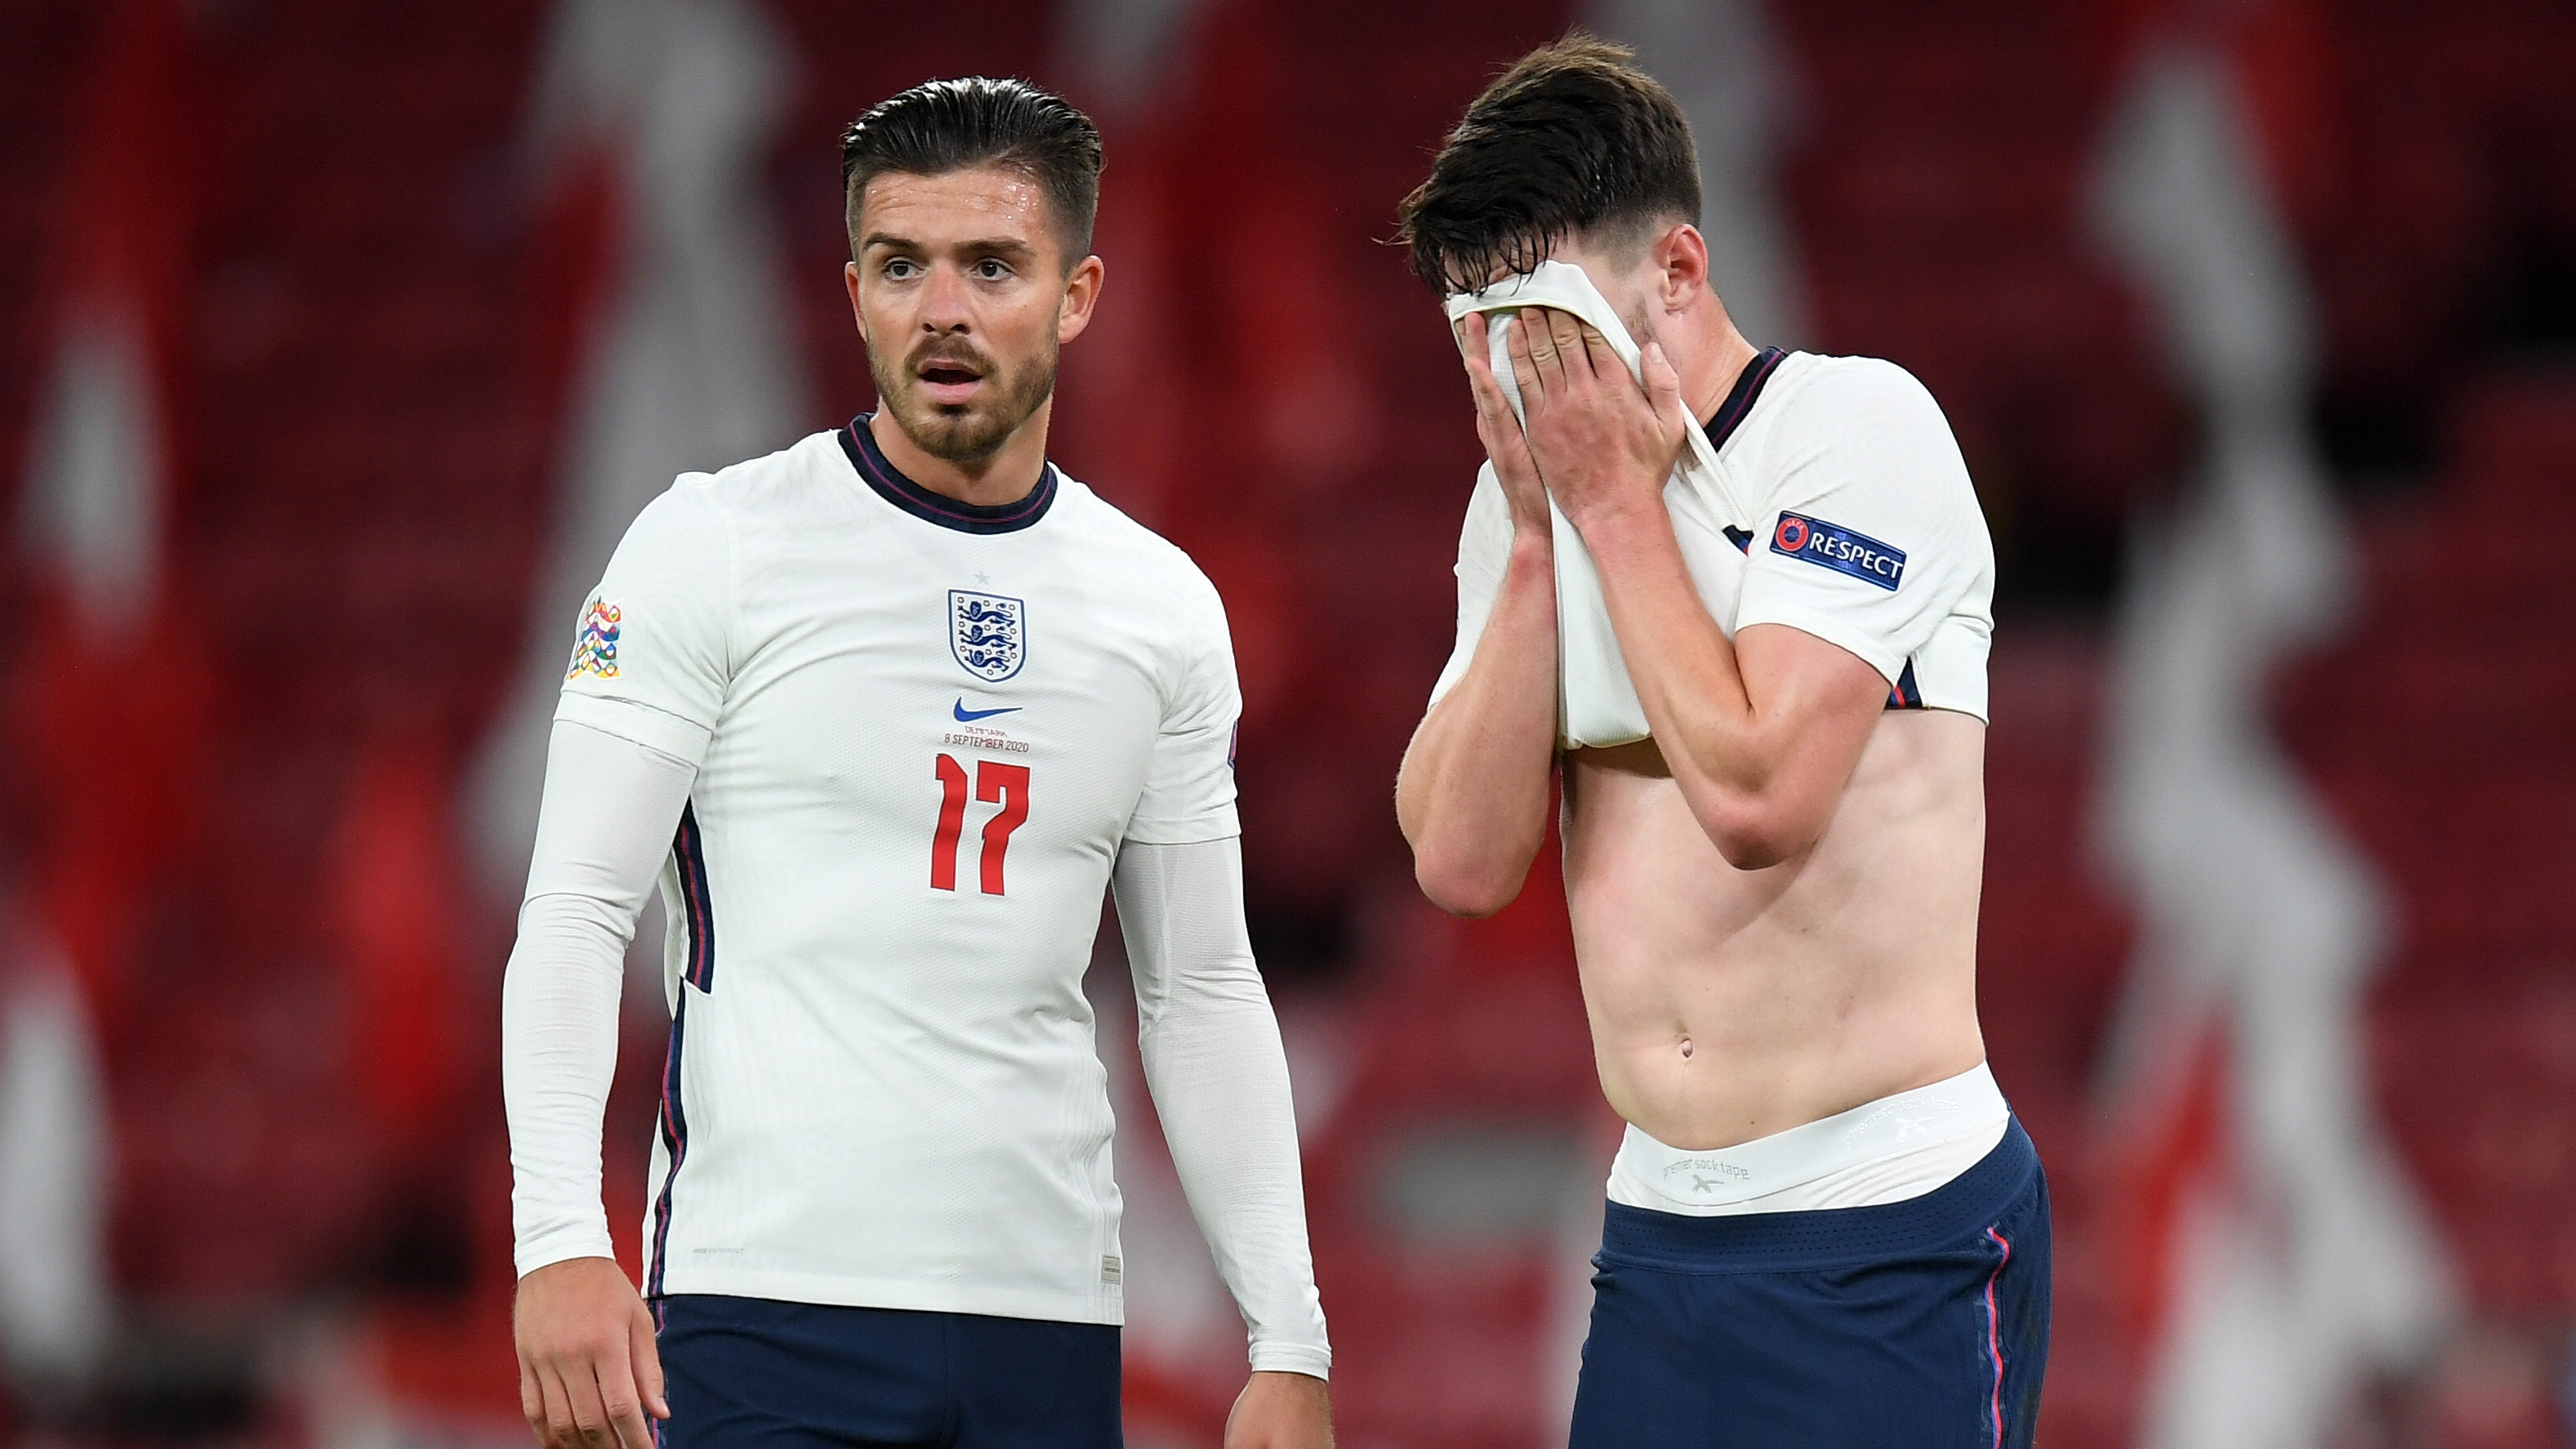 Grealish 'emotional' after making long-awaited England debut in draw against Denmark